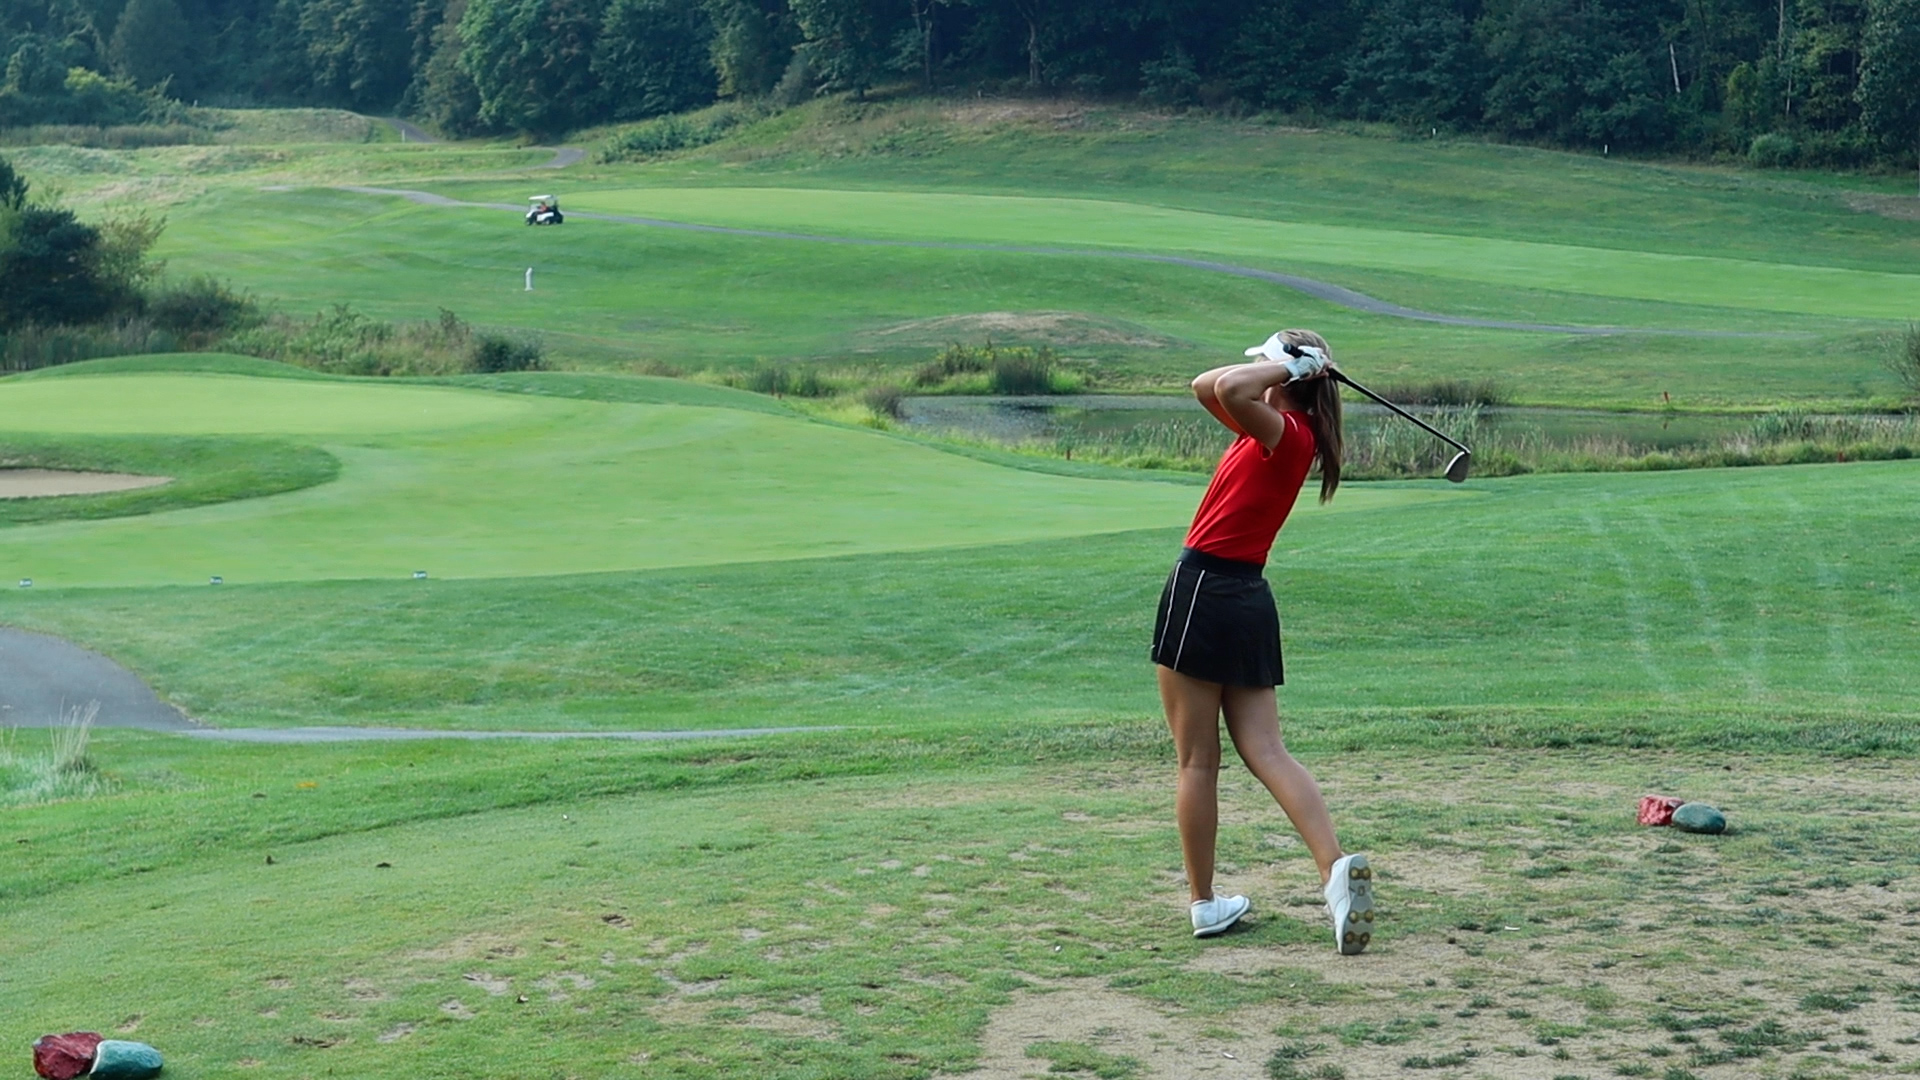 New Philadelphia senior Sydney Devore tees off on the fifth hole of Oak Shadows' back nine in the Quakers' match against Fairless High School on Monday, September 13, 2021.